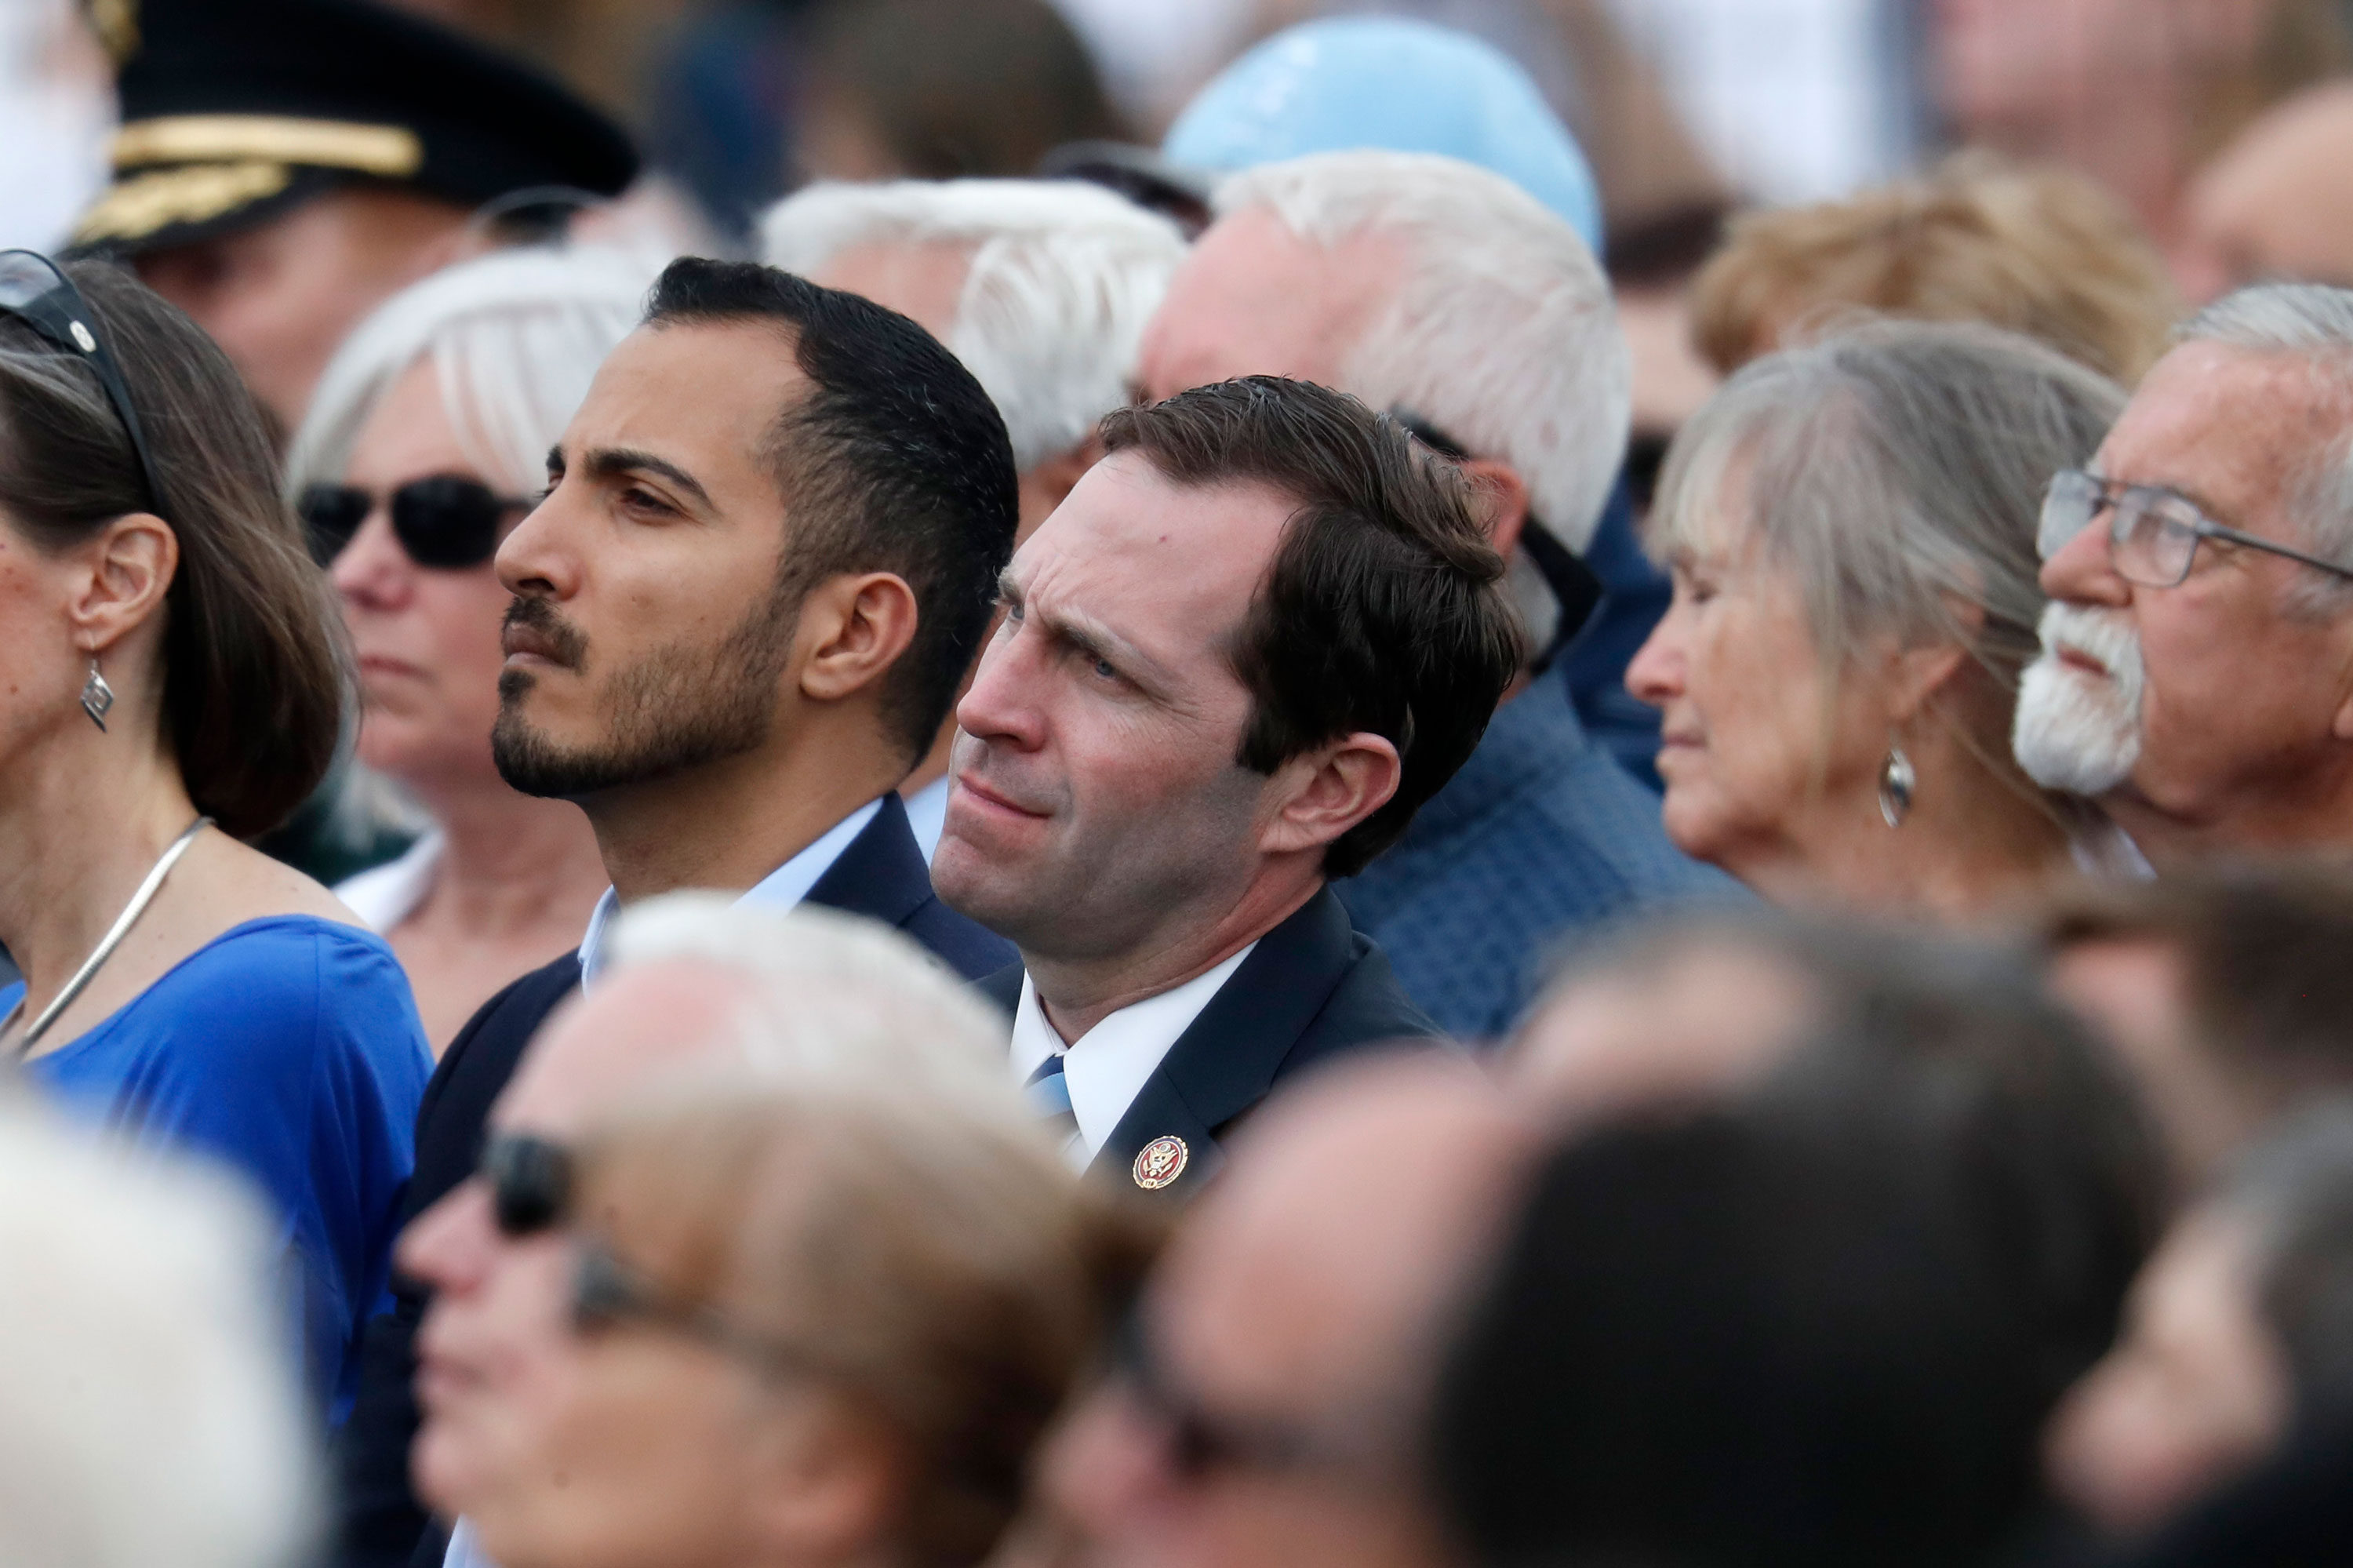 <p>U.S. Rep. Jason, Crow, D-Colo., center joins attendees during a program for the victims of the massacre at Columbine High School 20 years ago Saturday, April 20, 2019, in Littleton, Colo.</p>